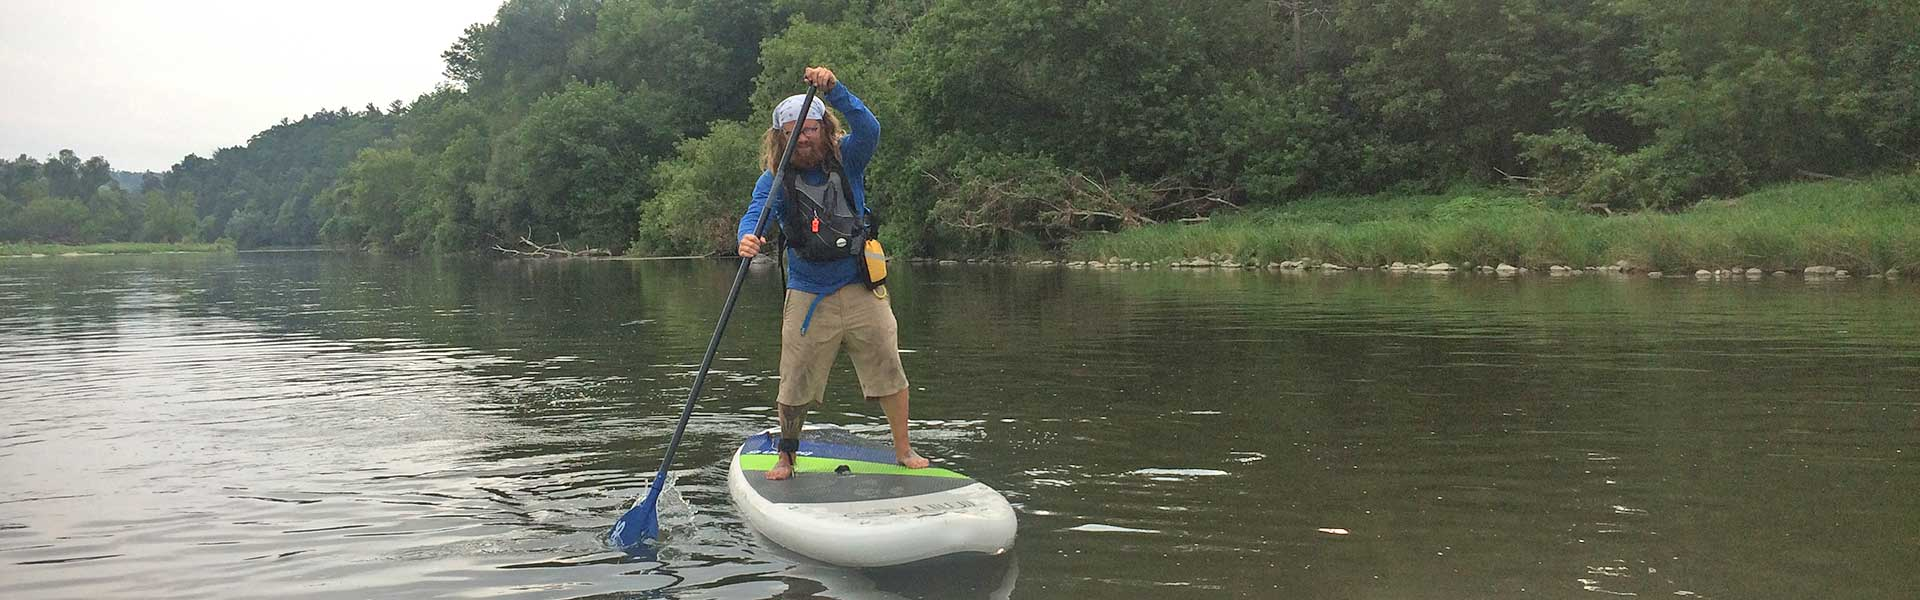 Stand up Paddle board rental grand river rafting